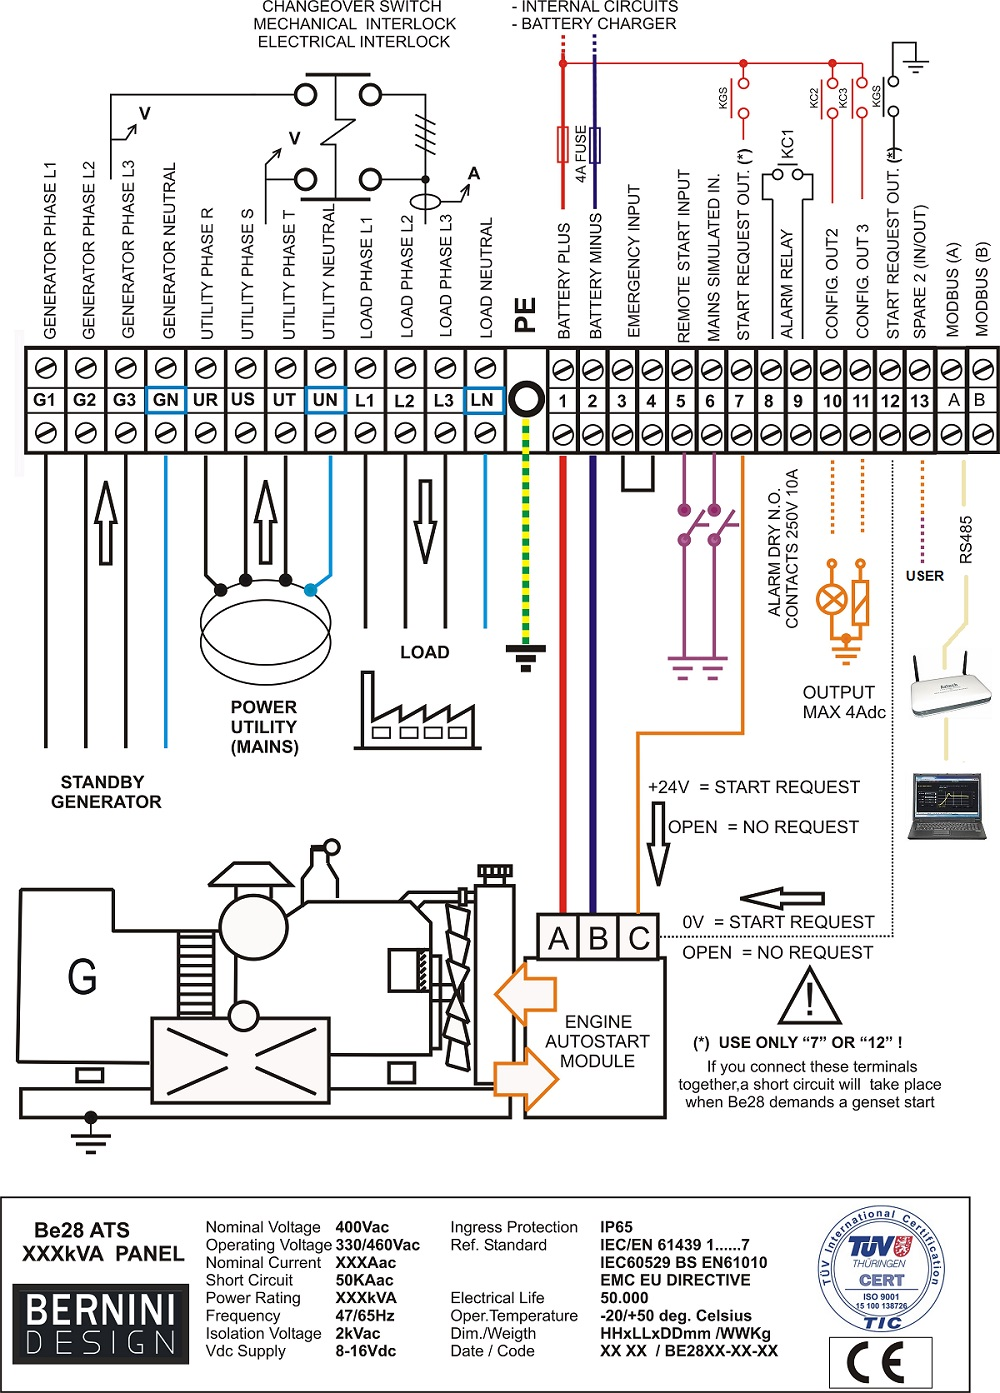 Main Power Plug Diagram Free Download Wiring Schematic Onan Generator Schematics Electric Dc Jack